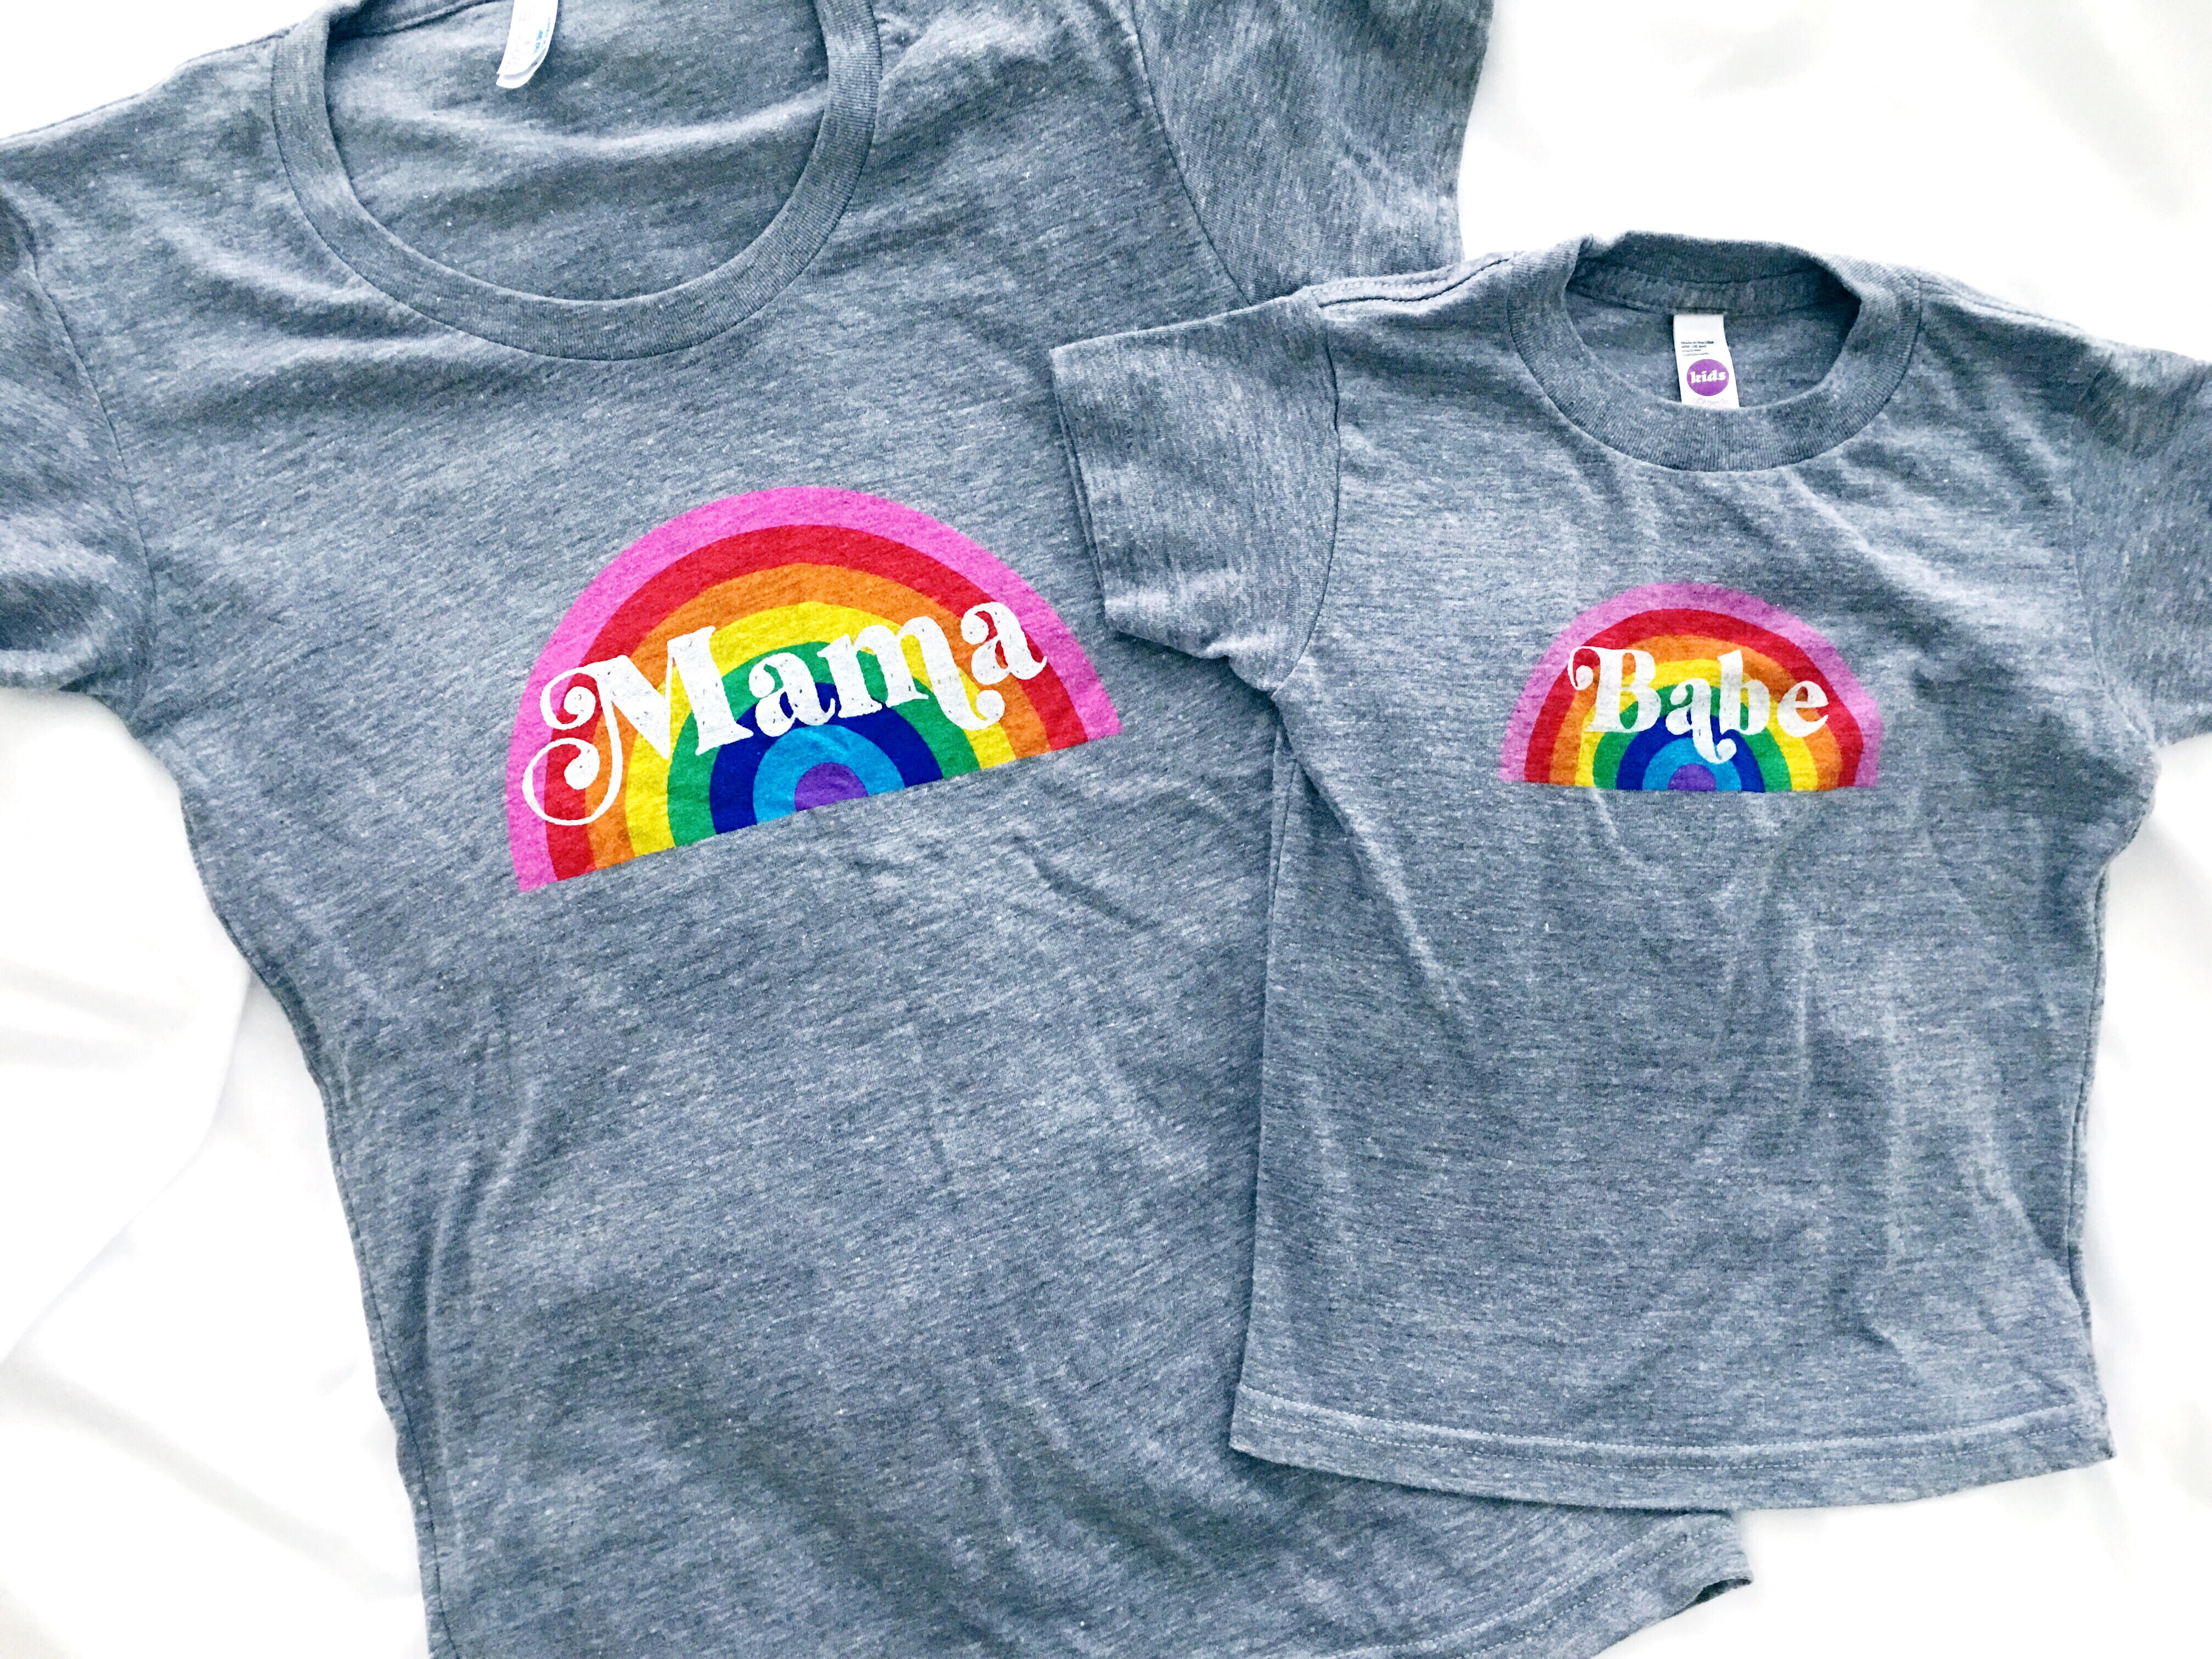 i had a miscarriage campaign, rainbow baby, rainbow mamas, jessica zucker, rainbow mama tee, rainbow babe tee, pregnancy loss, miscarriage support, pregnancy, mommy blog, parenting blog, los angeles mommy blog, pregnancy and infant loss awareness day